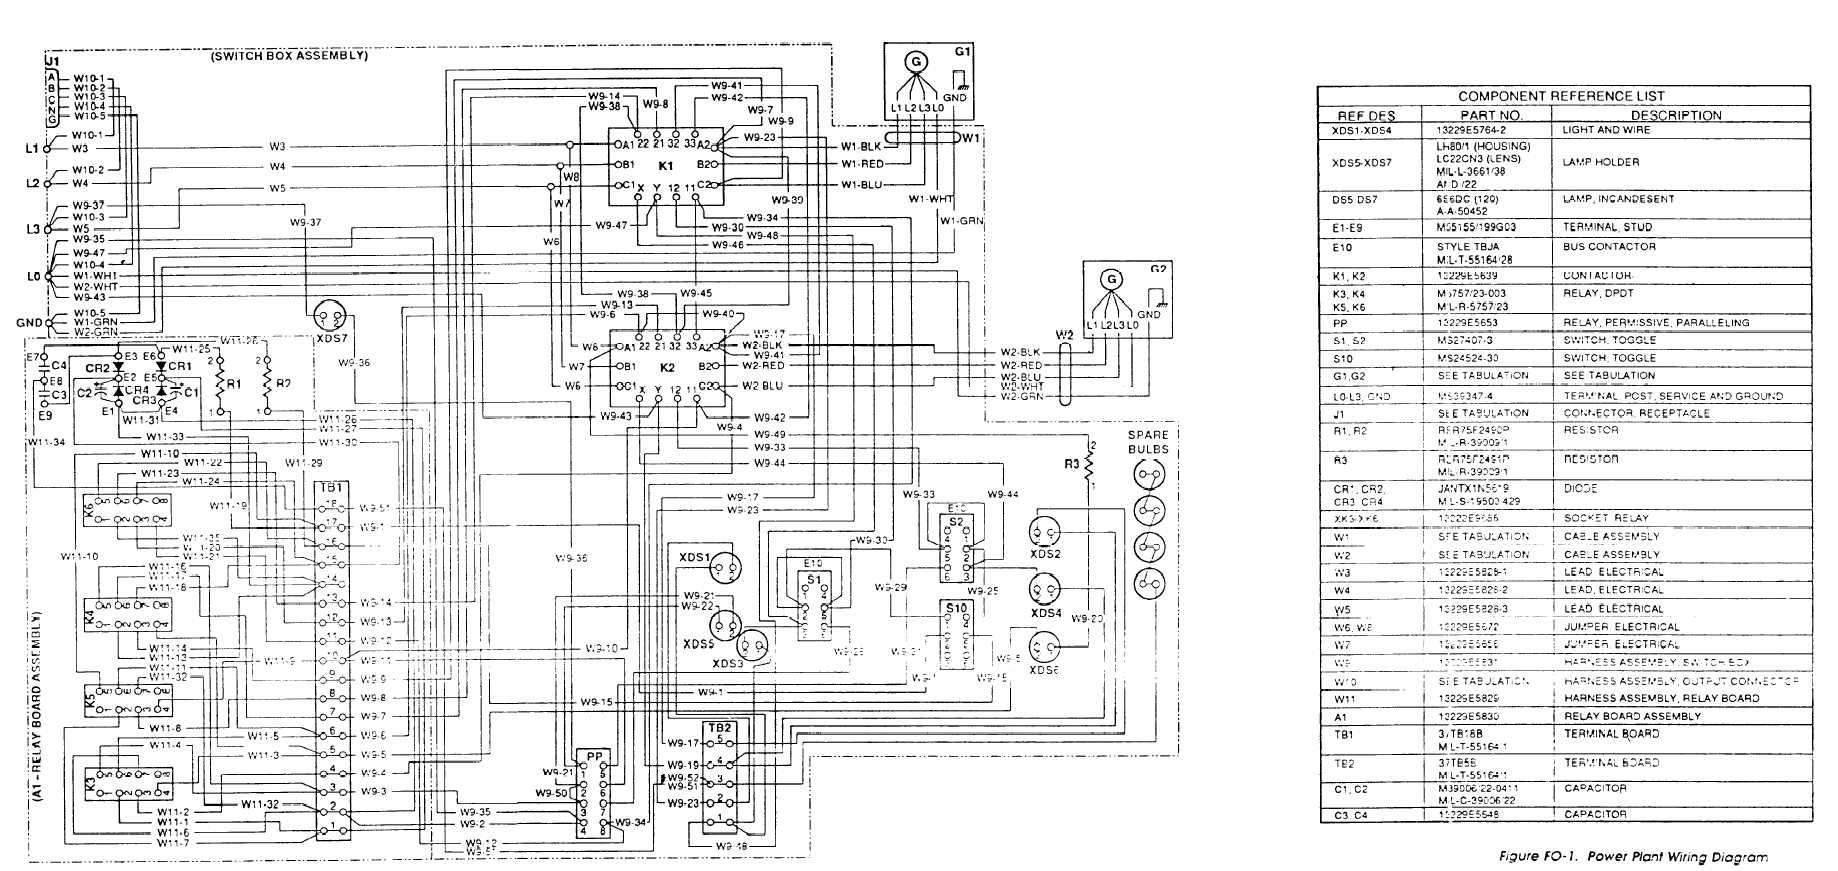 figure fo 1 power plant wiring diagram RJ45 Wall Jack Wiring Diagram power plant wiring diagram